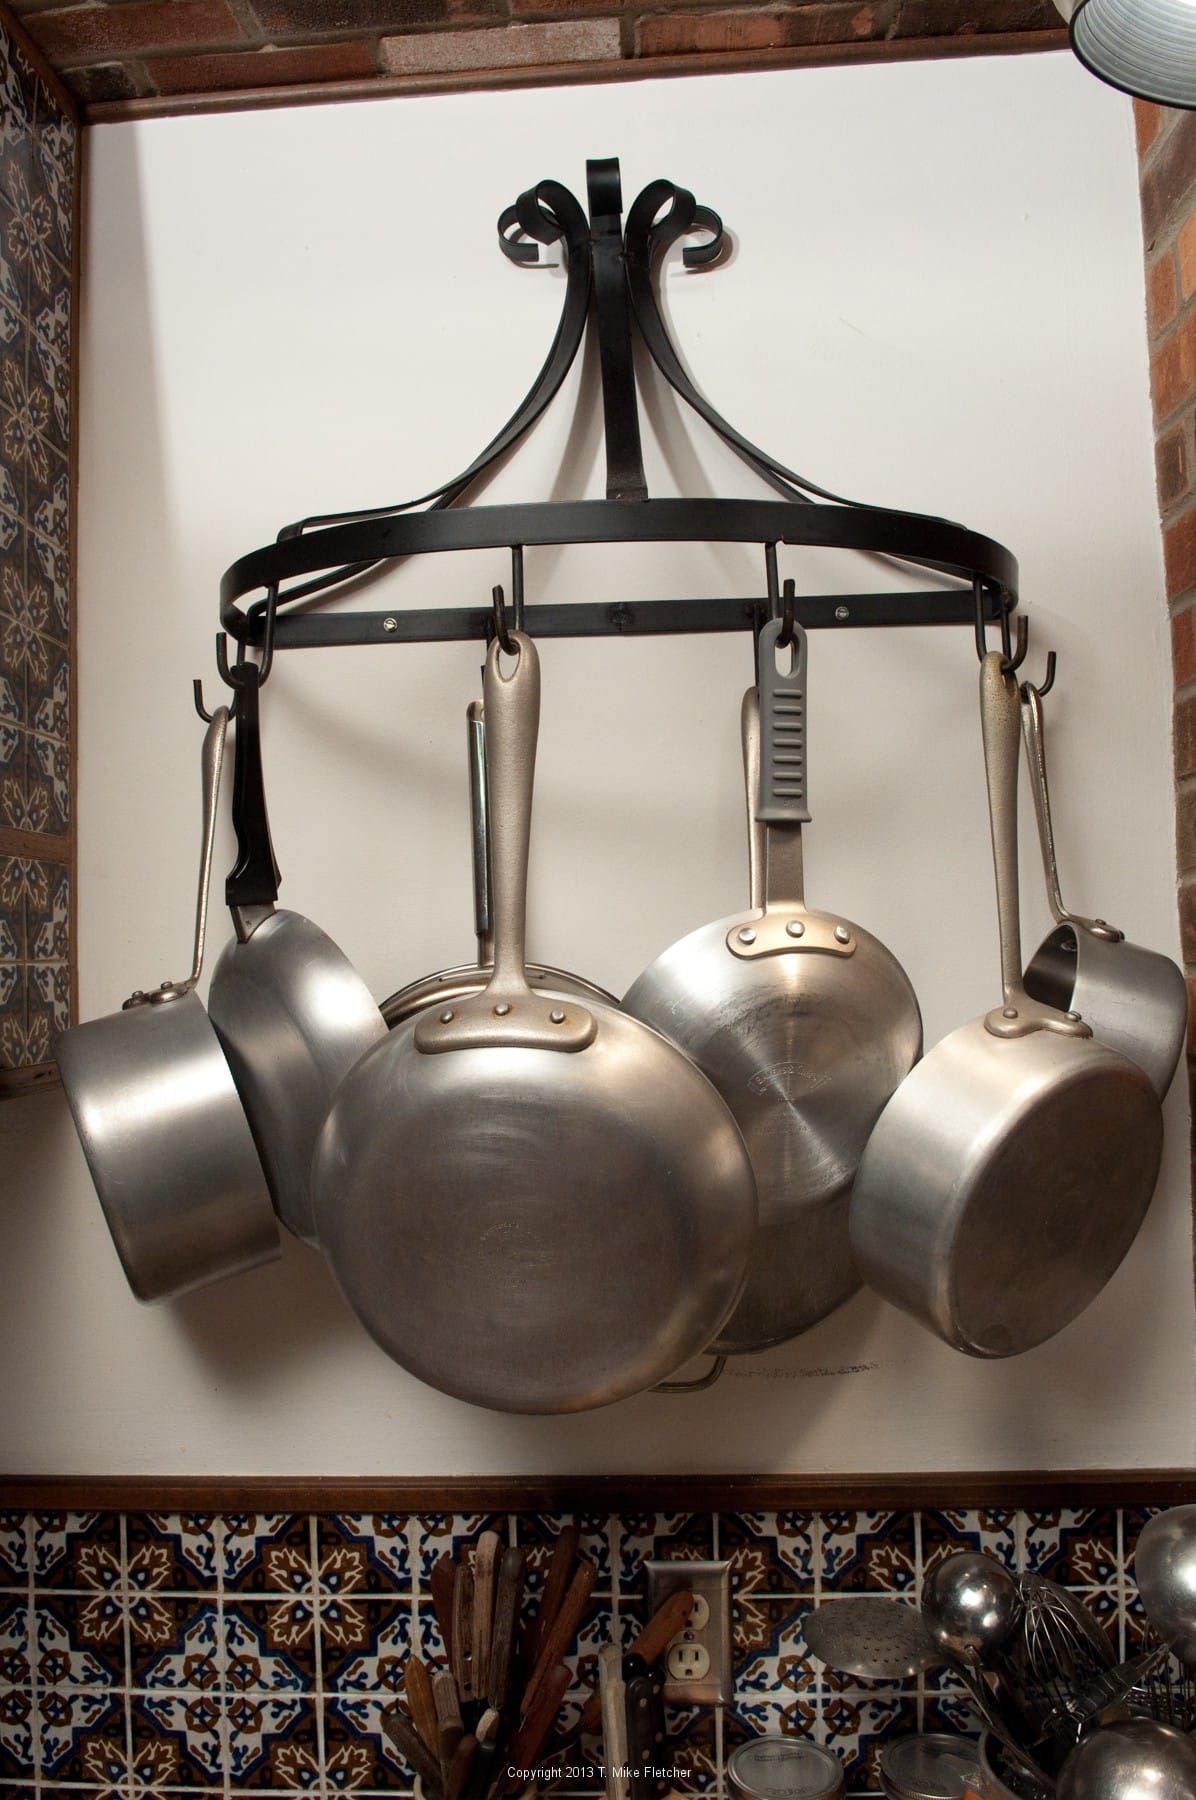 Lovely Pot And Pan Rack. How To Food Equipment